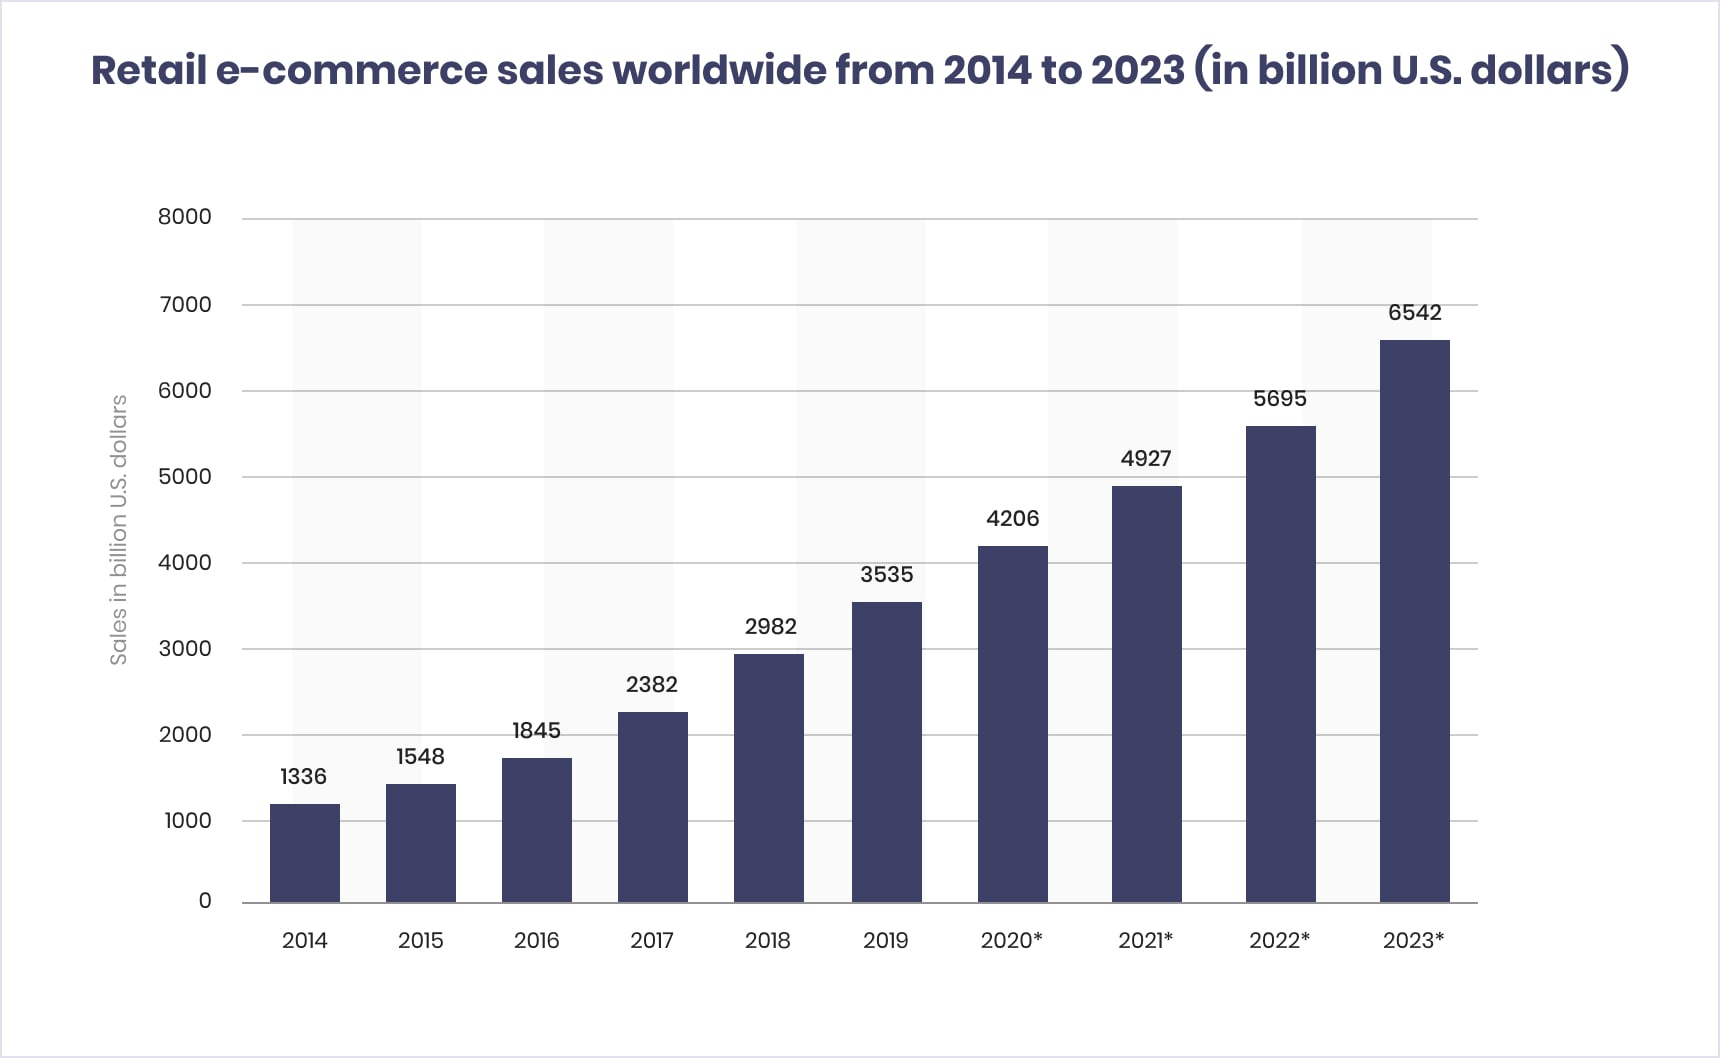 Retail e-commerce sales worldwide from 2014 to 2023 (in billion U.S. dollars